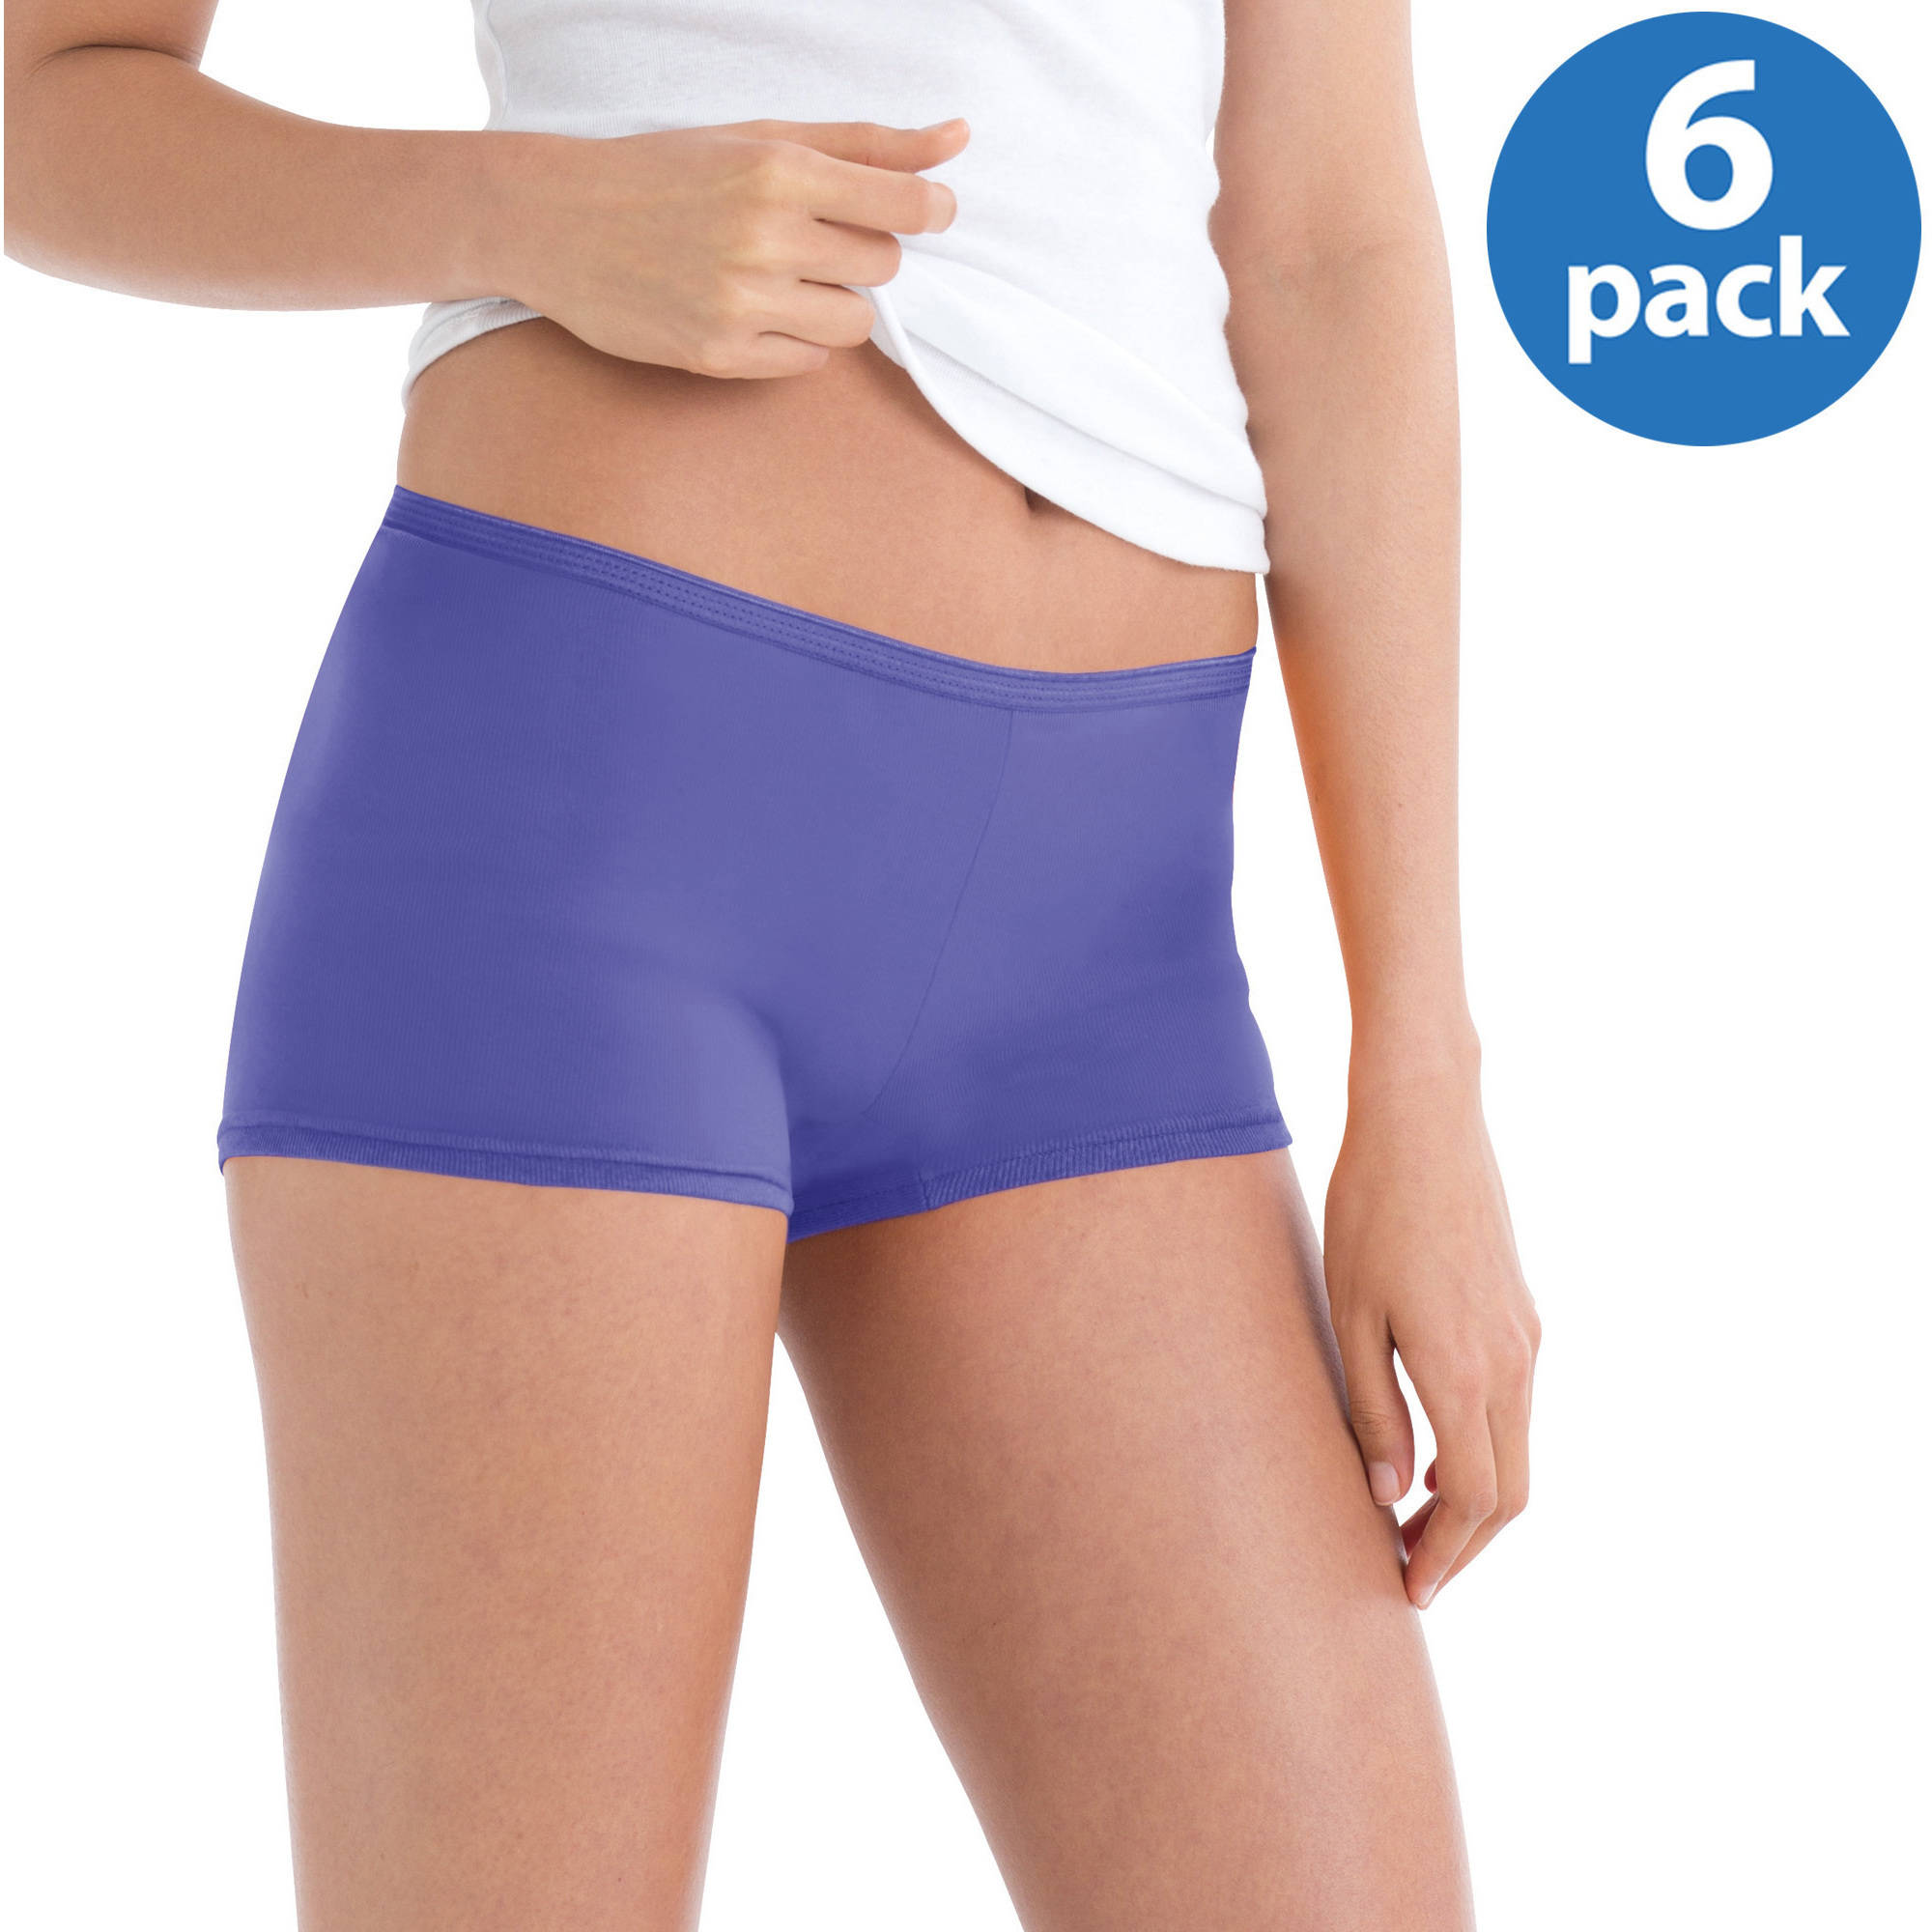 Hanes Women's Cotton Boybrief Panties 6-Pack, Colors May Vary